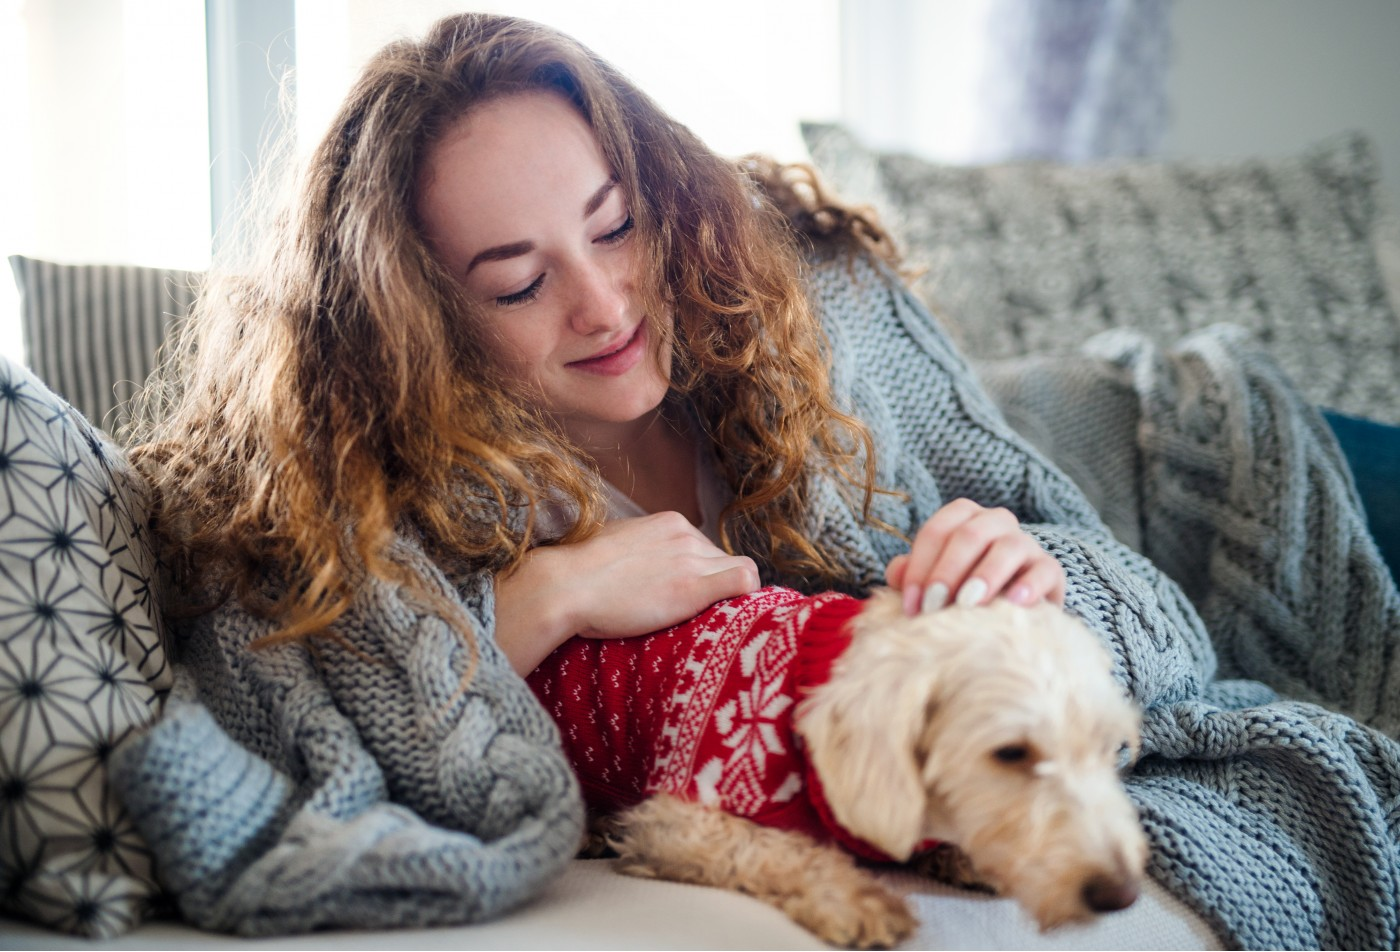 Young woman relaxing indoors on sofa at home with pet dog at medical center houston apartments